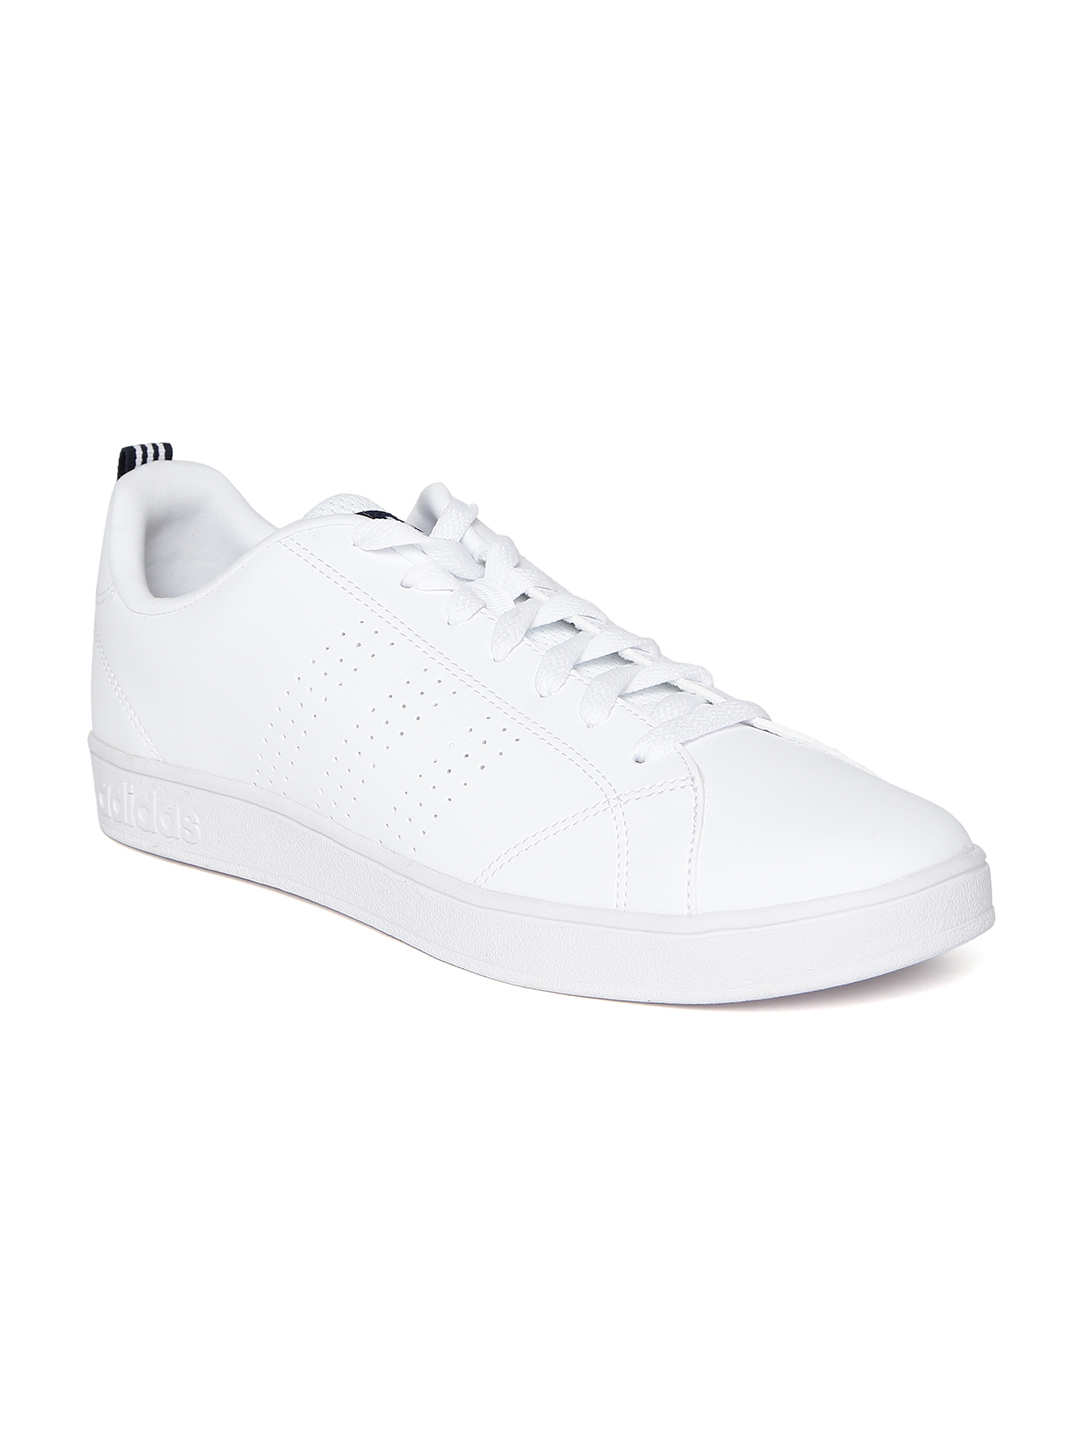 mens white adidas sneakers